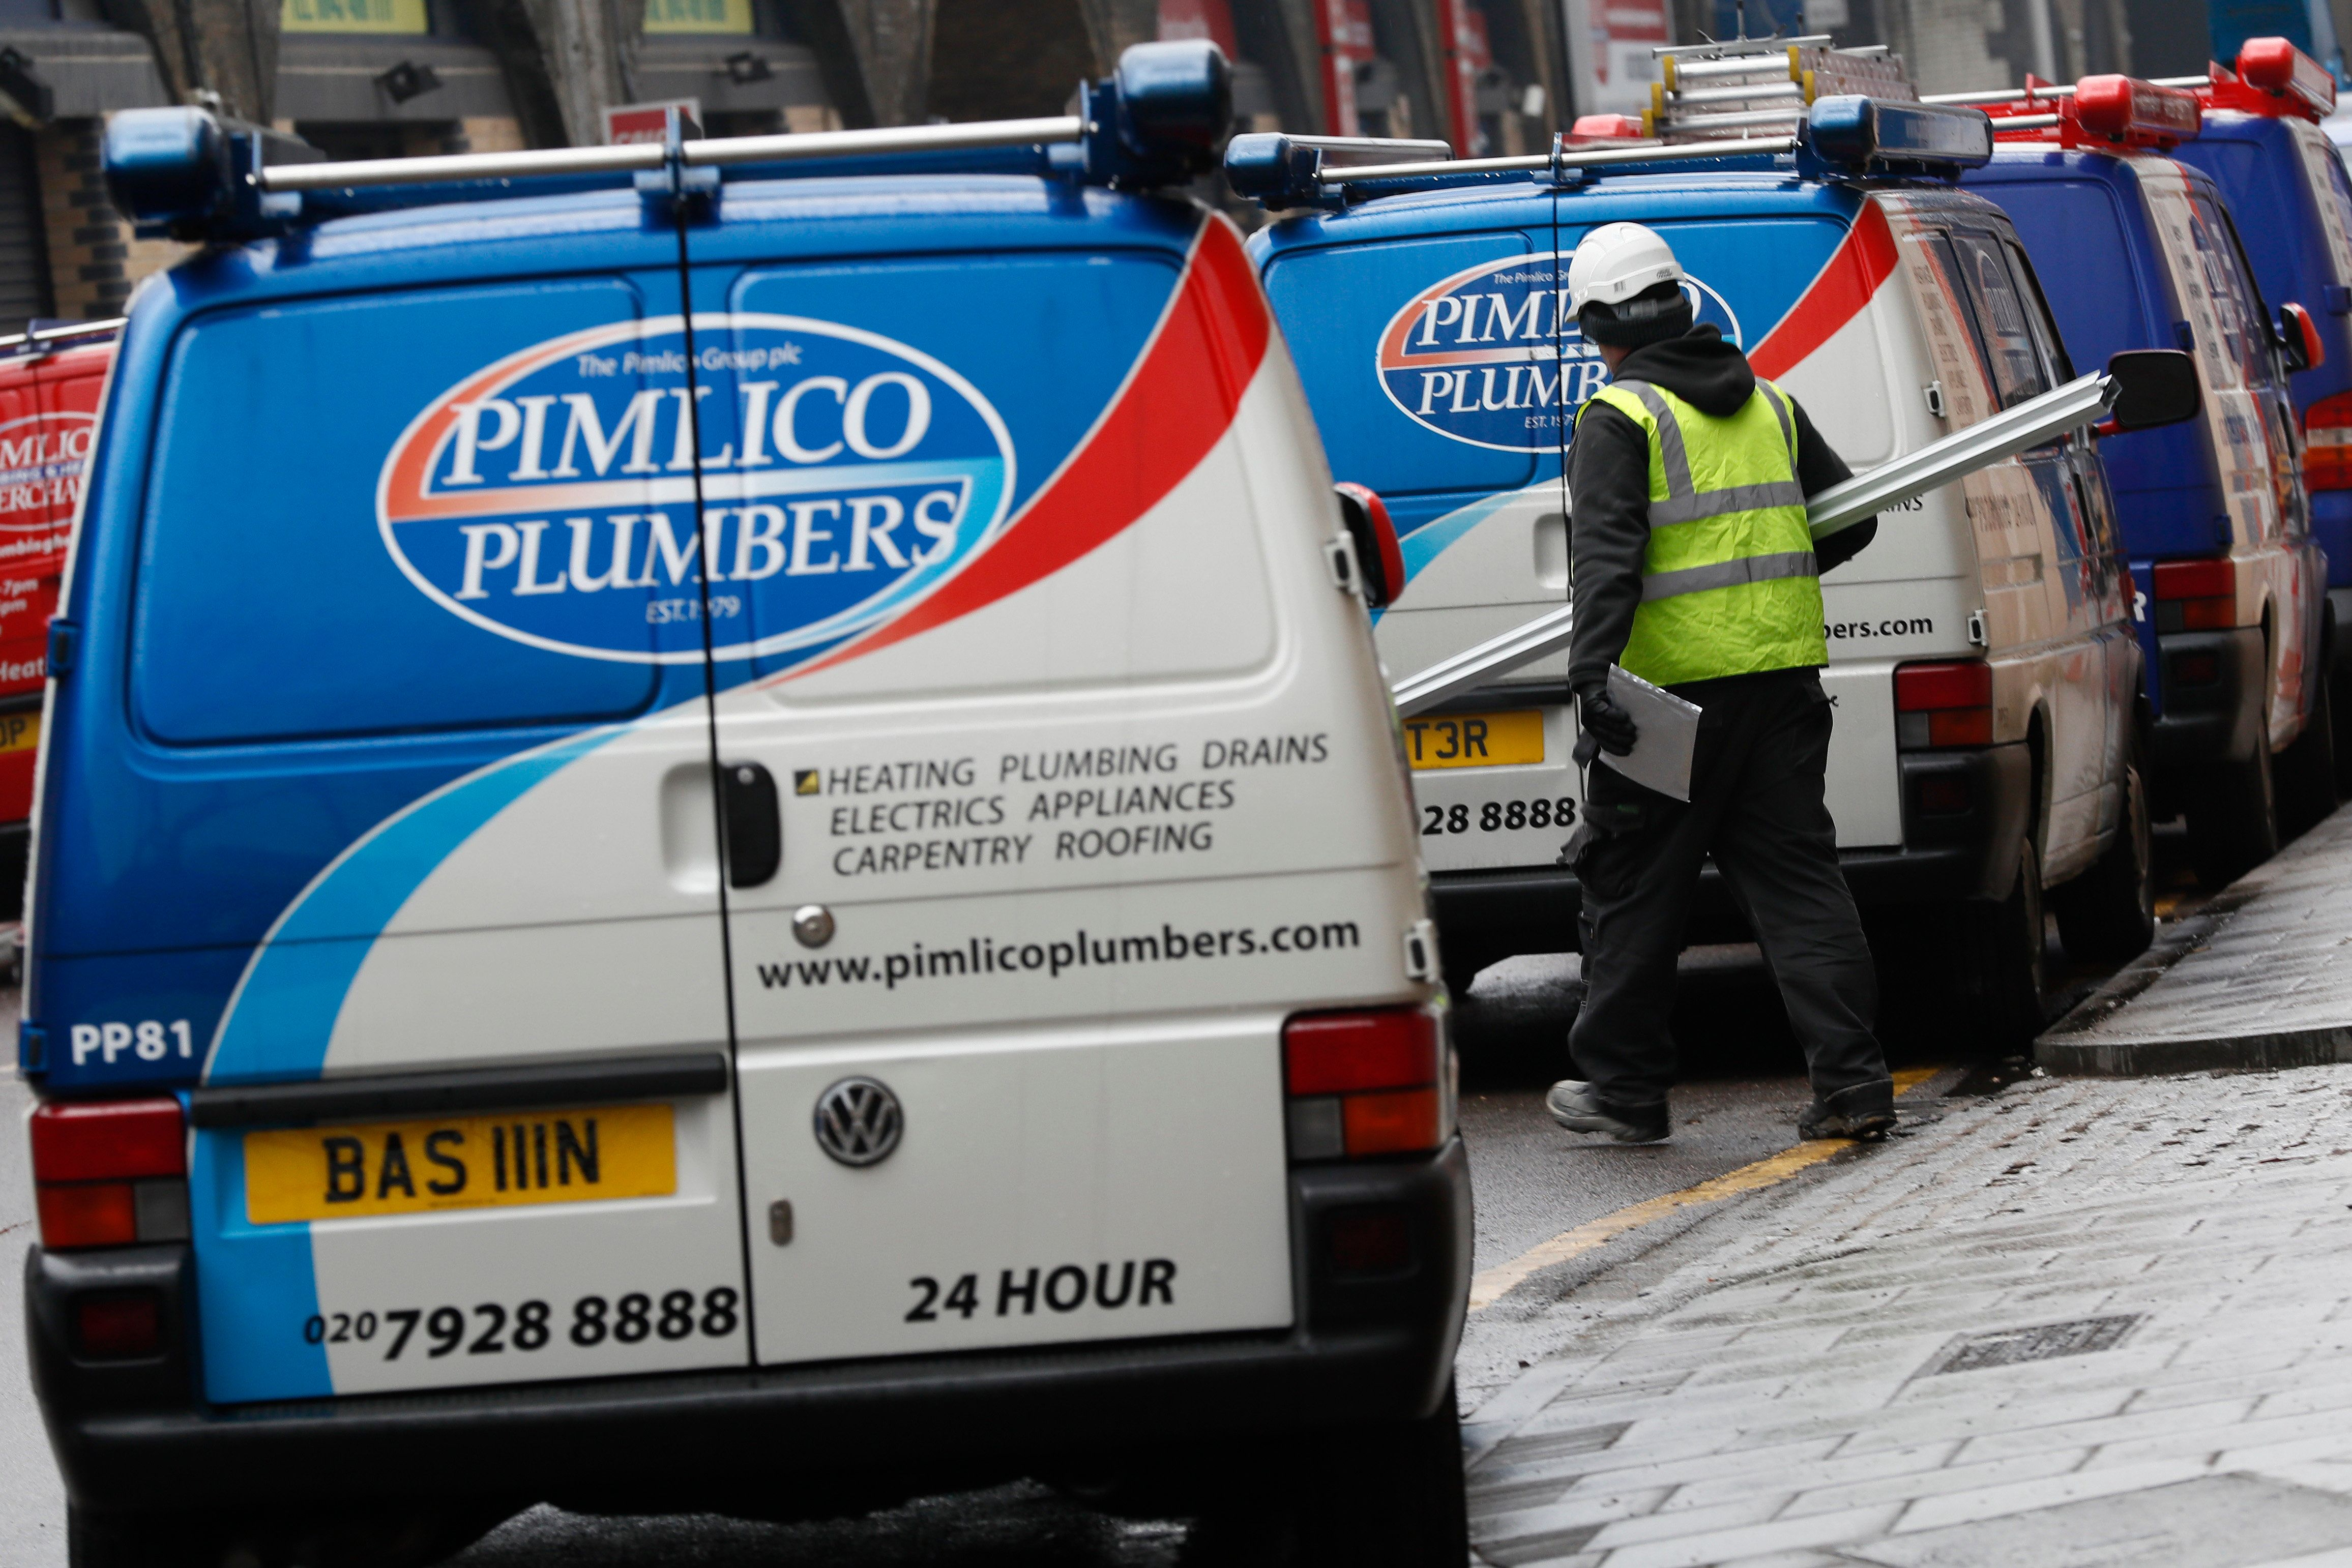 Supreme Court Rejects Pimlico Plumbers Appeal – A Landmark Ruling On Gig